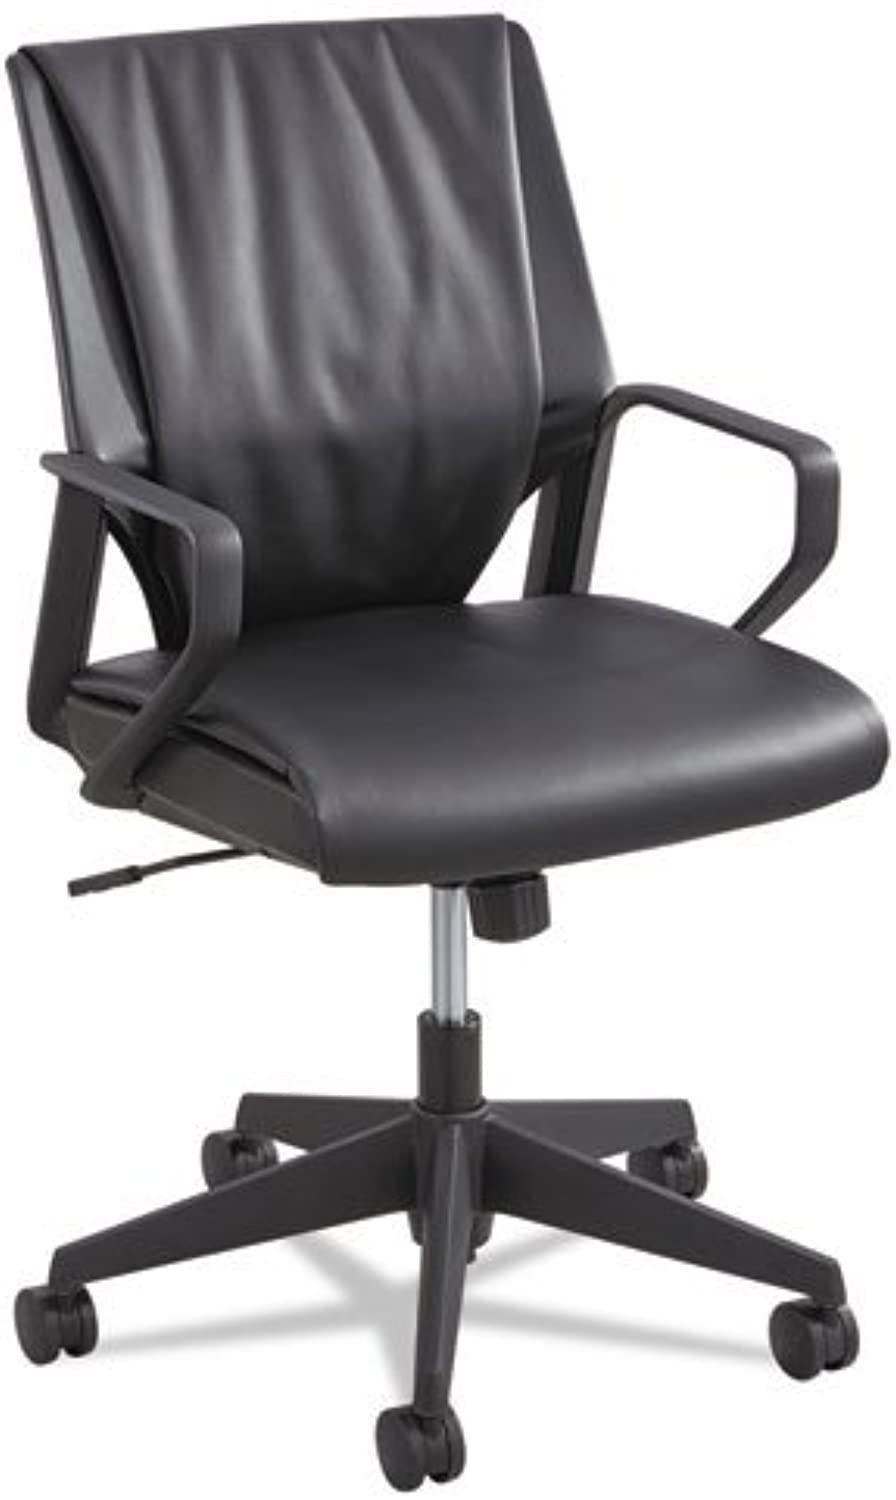 Safco Products Priya Leather Mid Back Executive Chair, Black